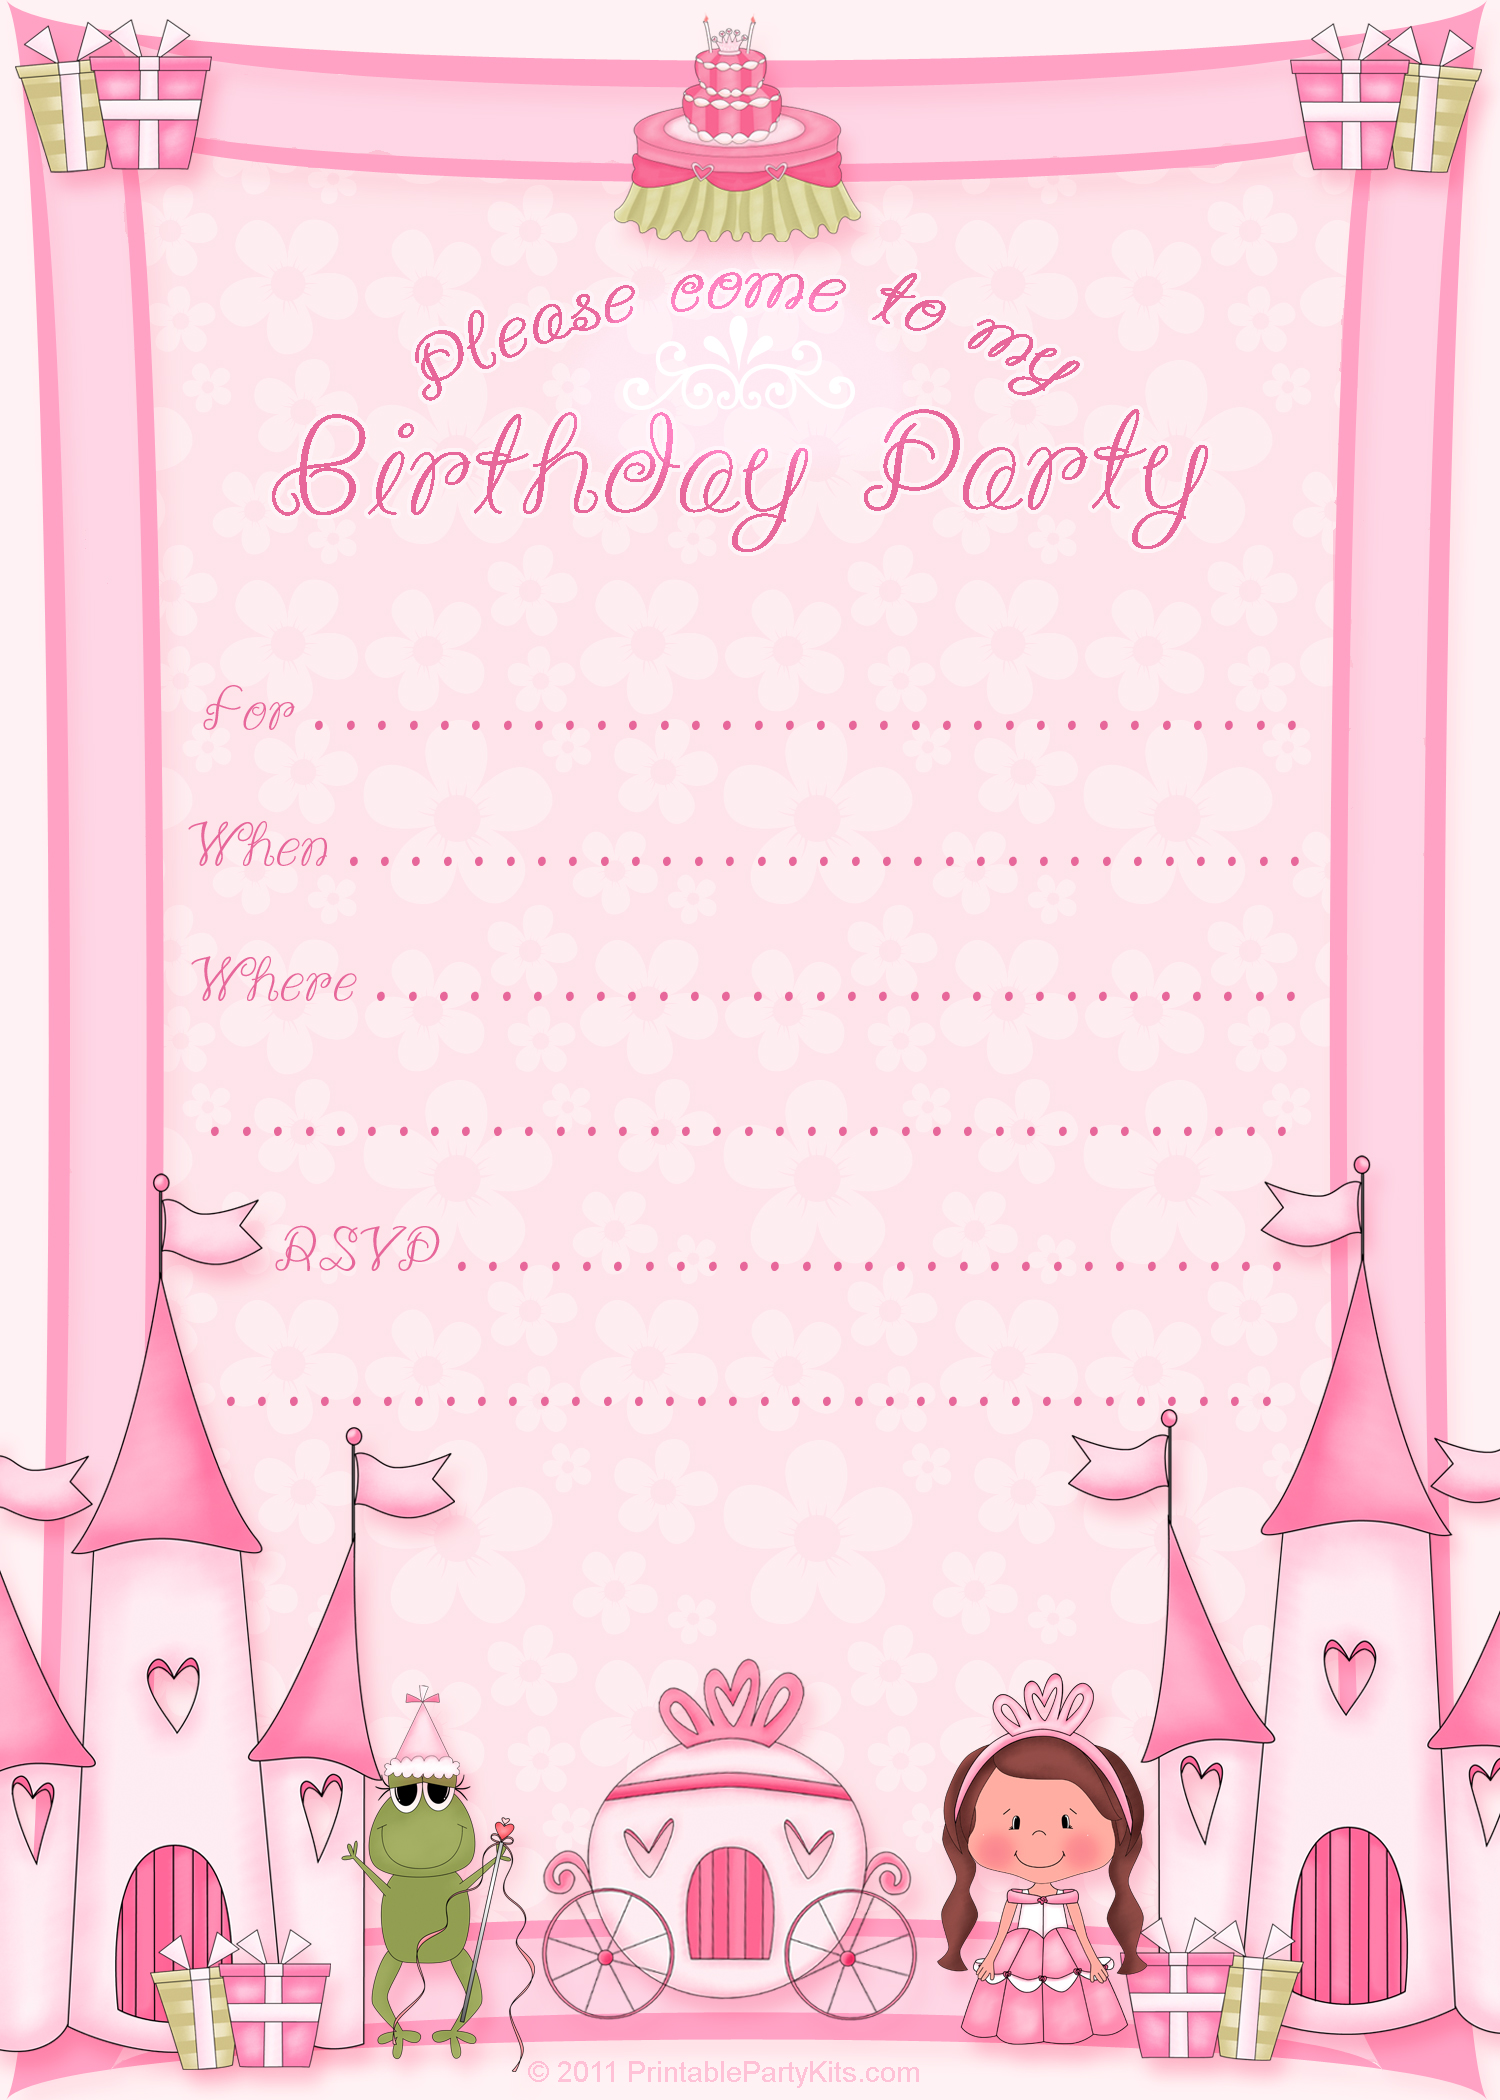 princess theme birthday invitation ; Birthday-Invitation-Princess-Theme-for-a-attractive-birthday-Invitation-design-with-attractive-layout-1